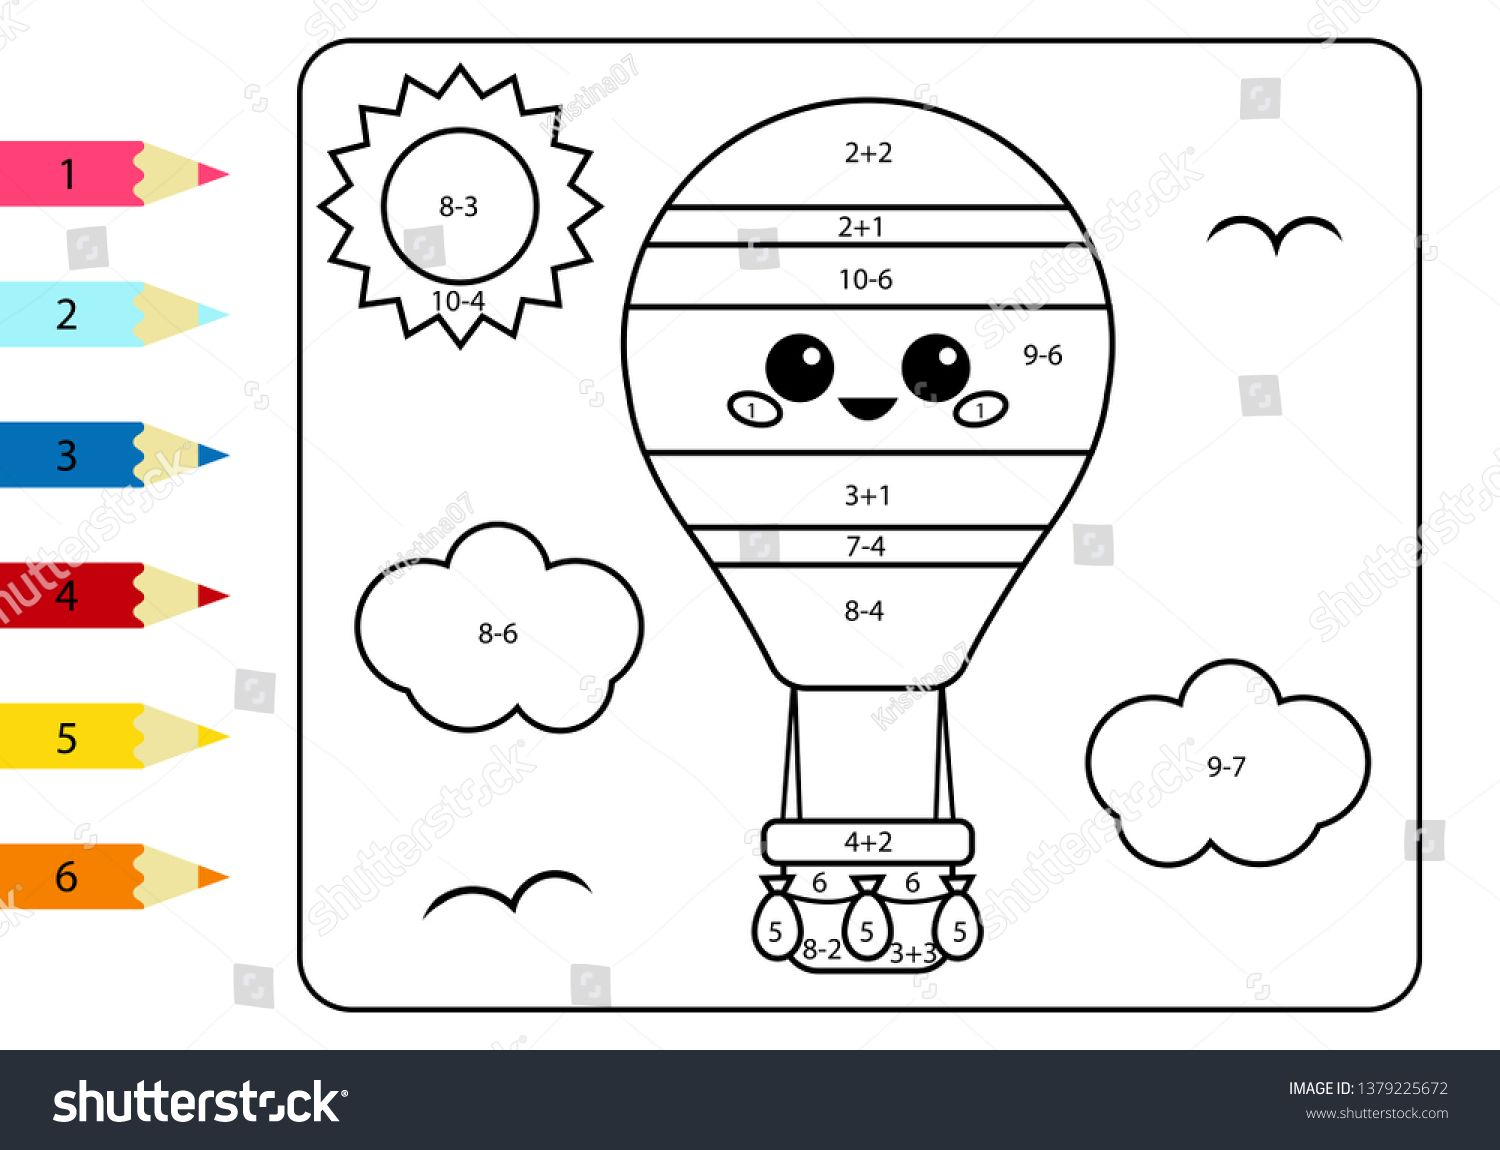 Coloring Page By Numbers Kawaii Cartoon Hot Air Balloon Activity Worksheet Addition And Subtraction Educat Coloring Pages Cartoon Educational Games For Kids